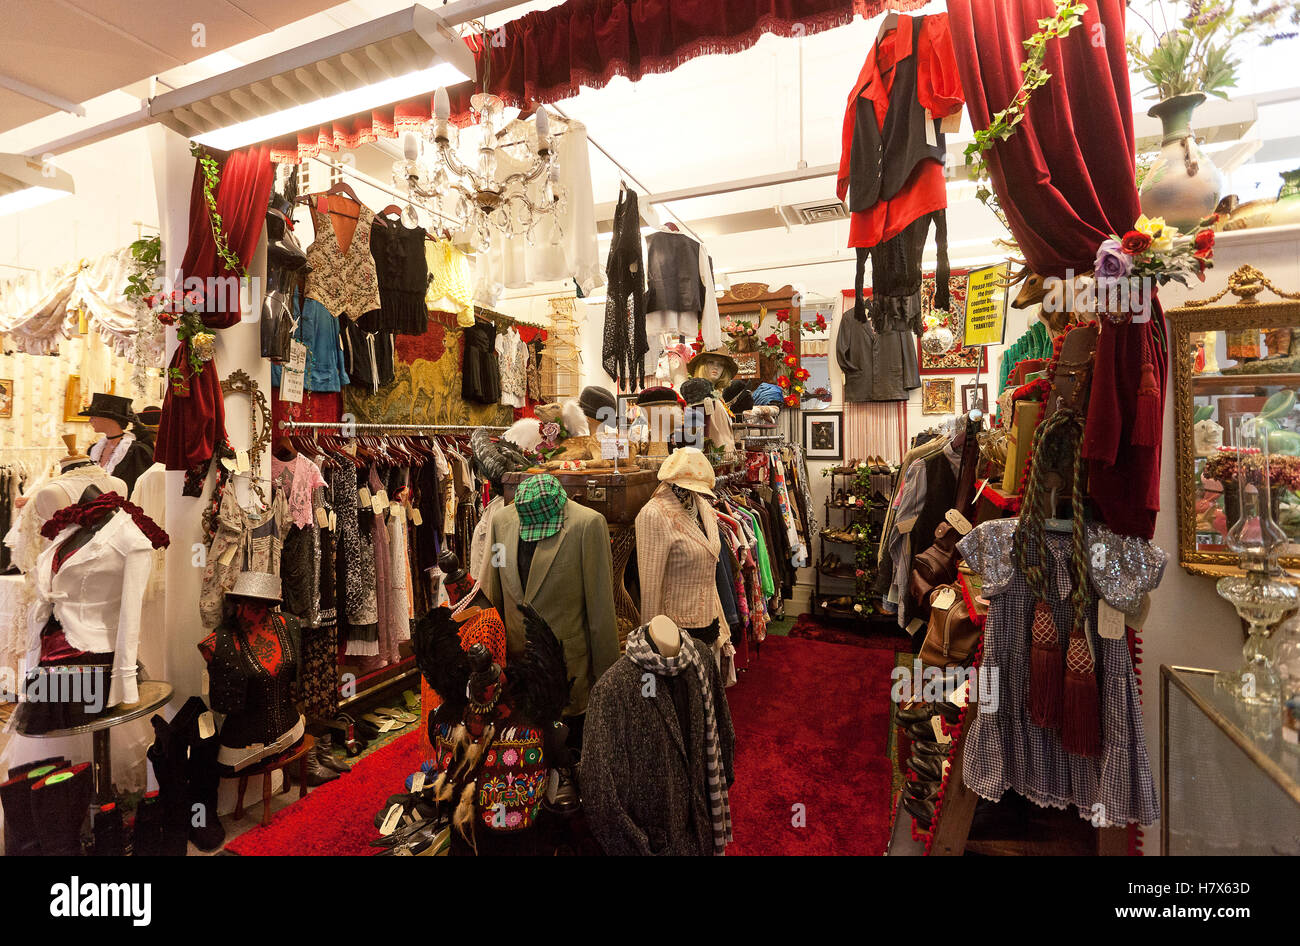 Carrington Bazaar, antiques and collectibles store, Lismore, NSW, Australia - Stock Image